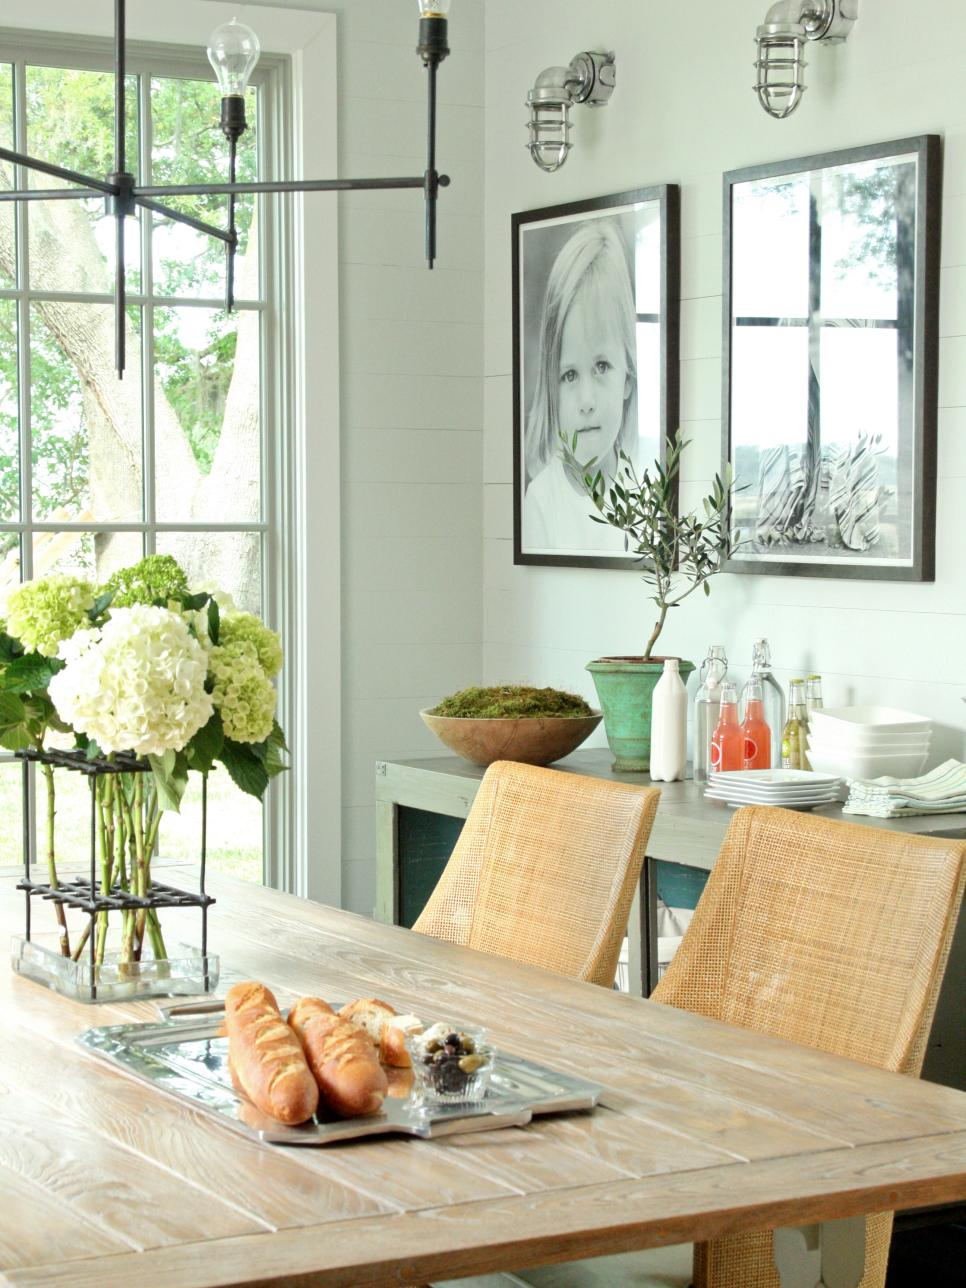 15 dining room decorating ideas hgtv for Decorating a dining table ideas